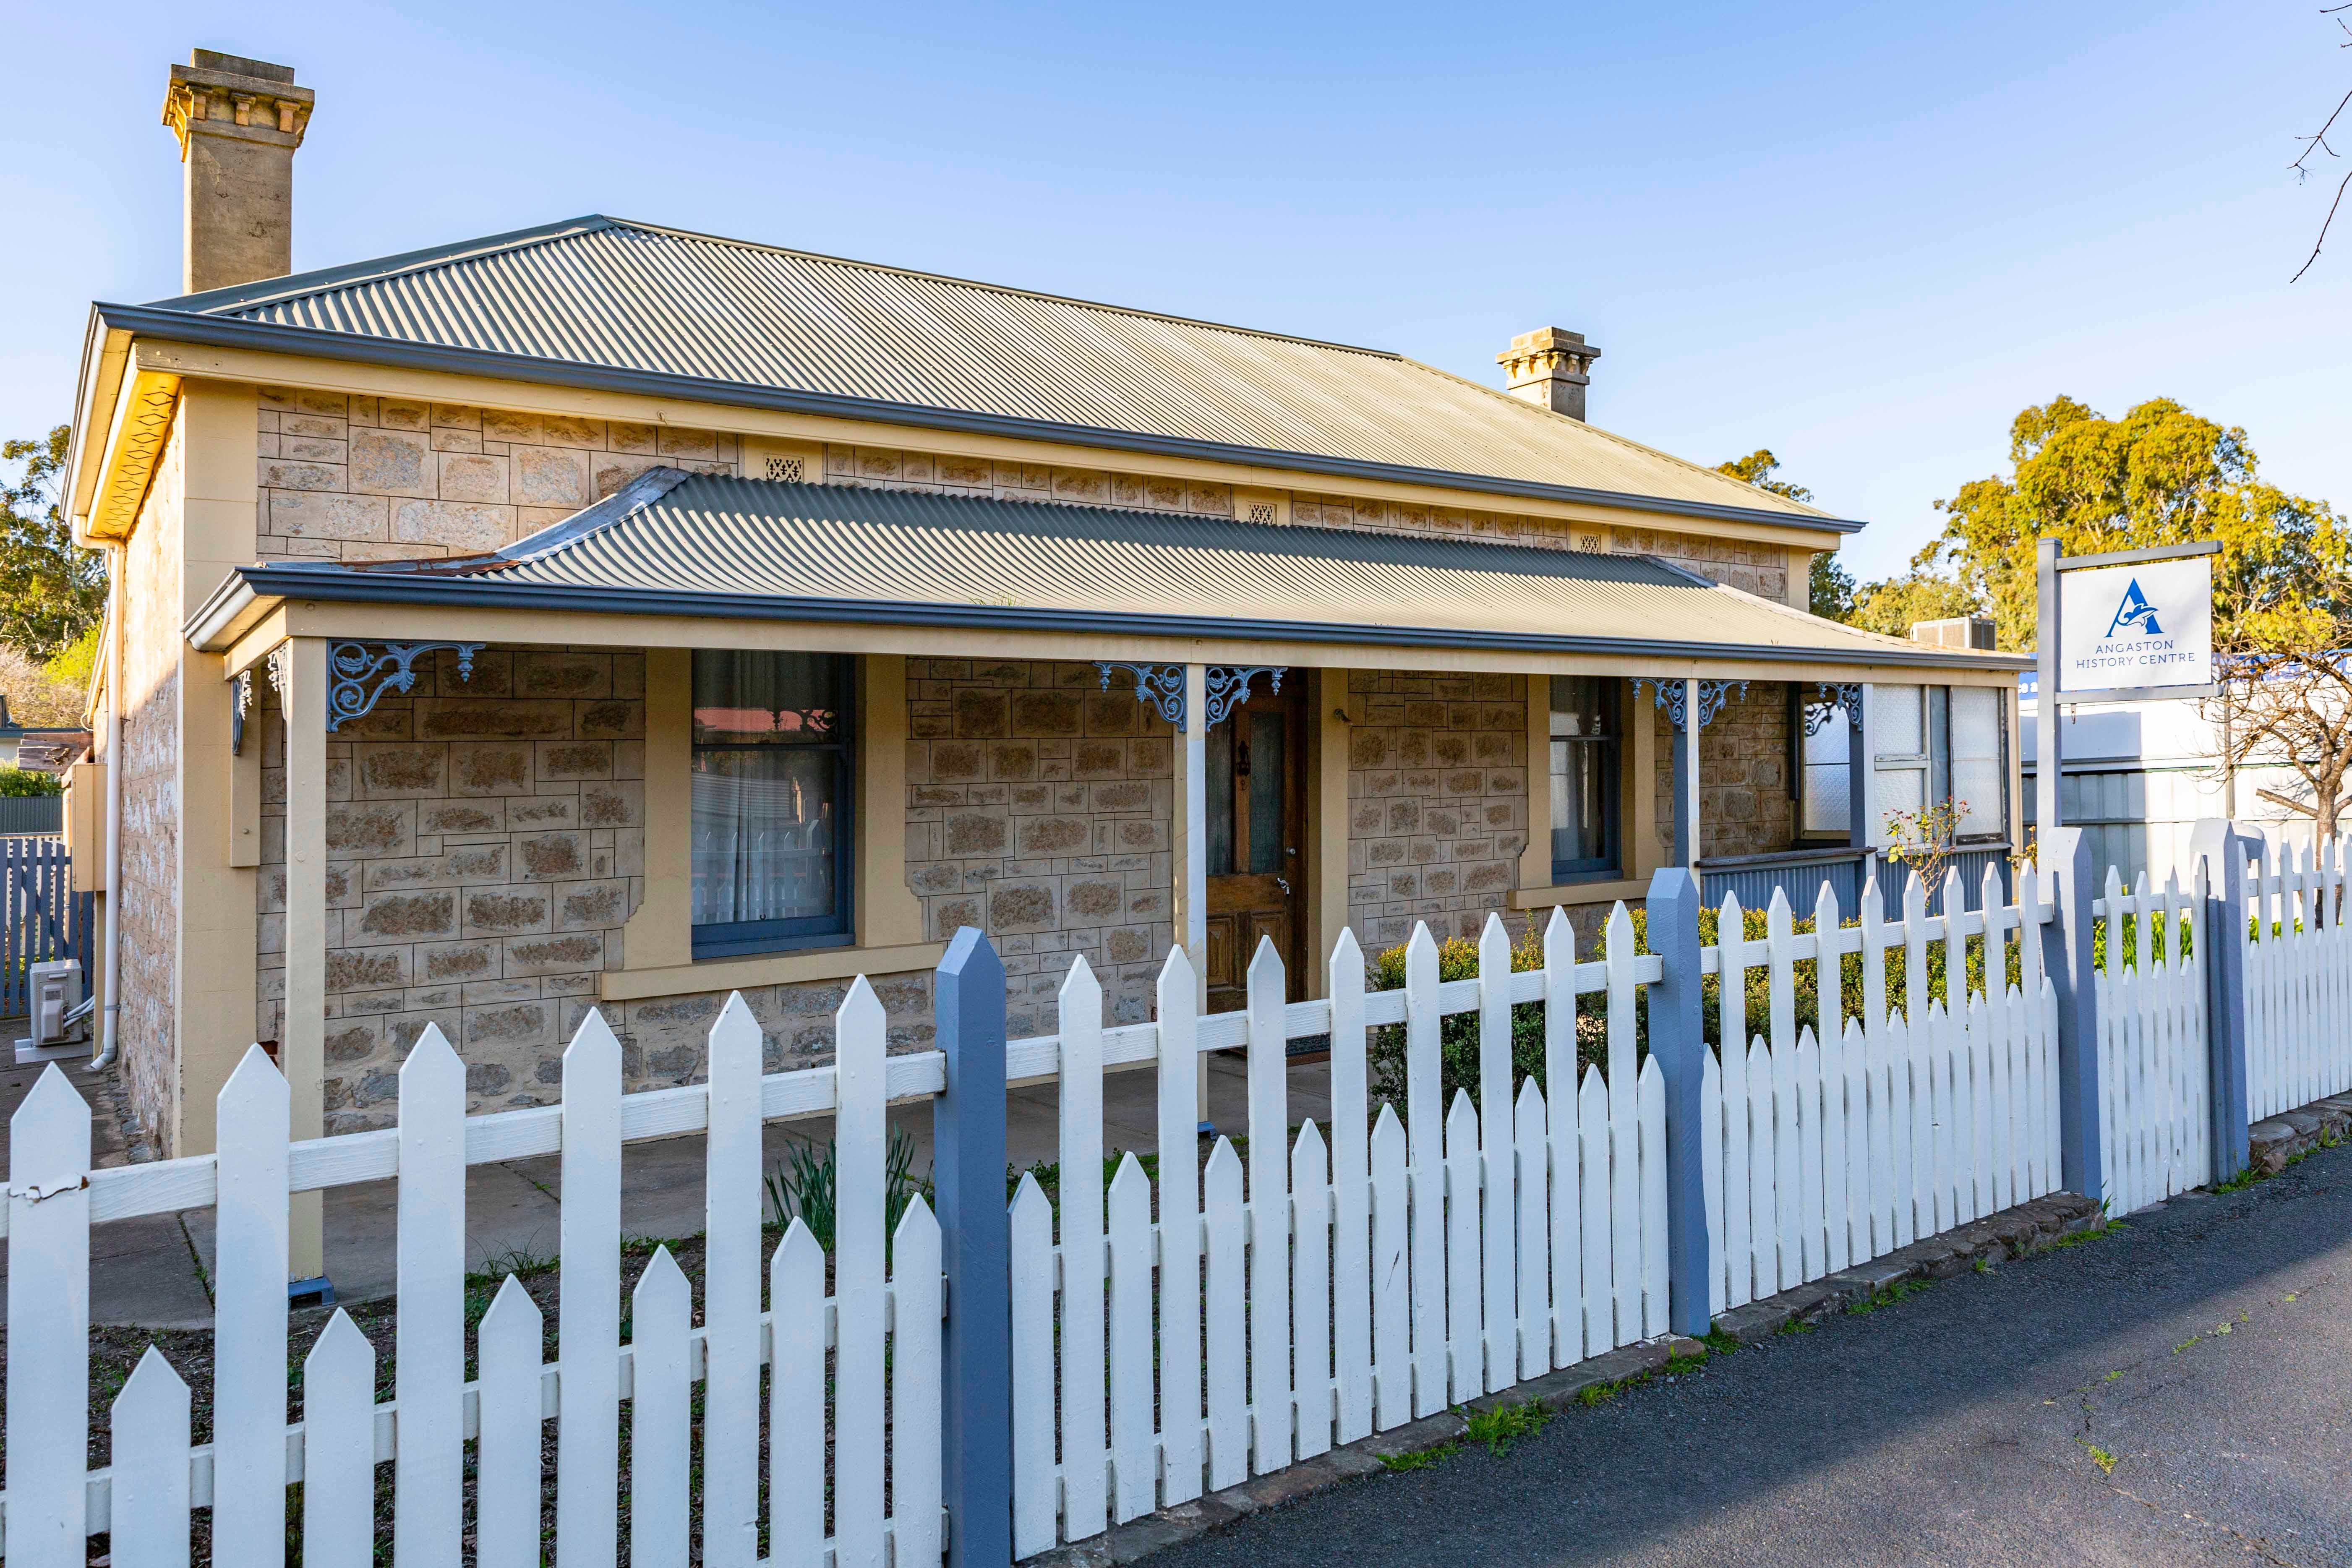 Angaston History Centre - Accommodation Perth